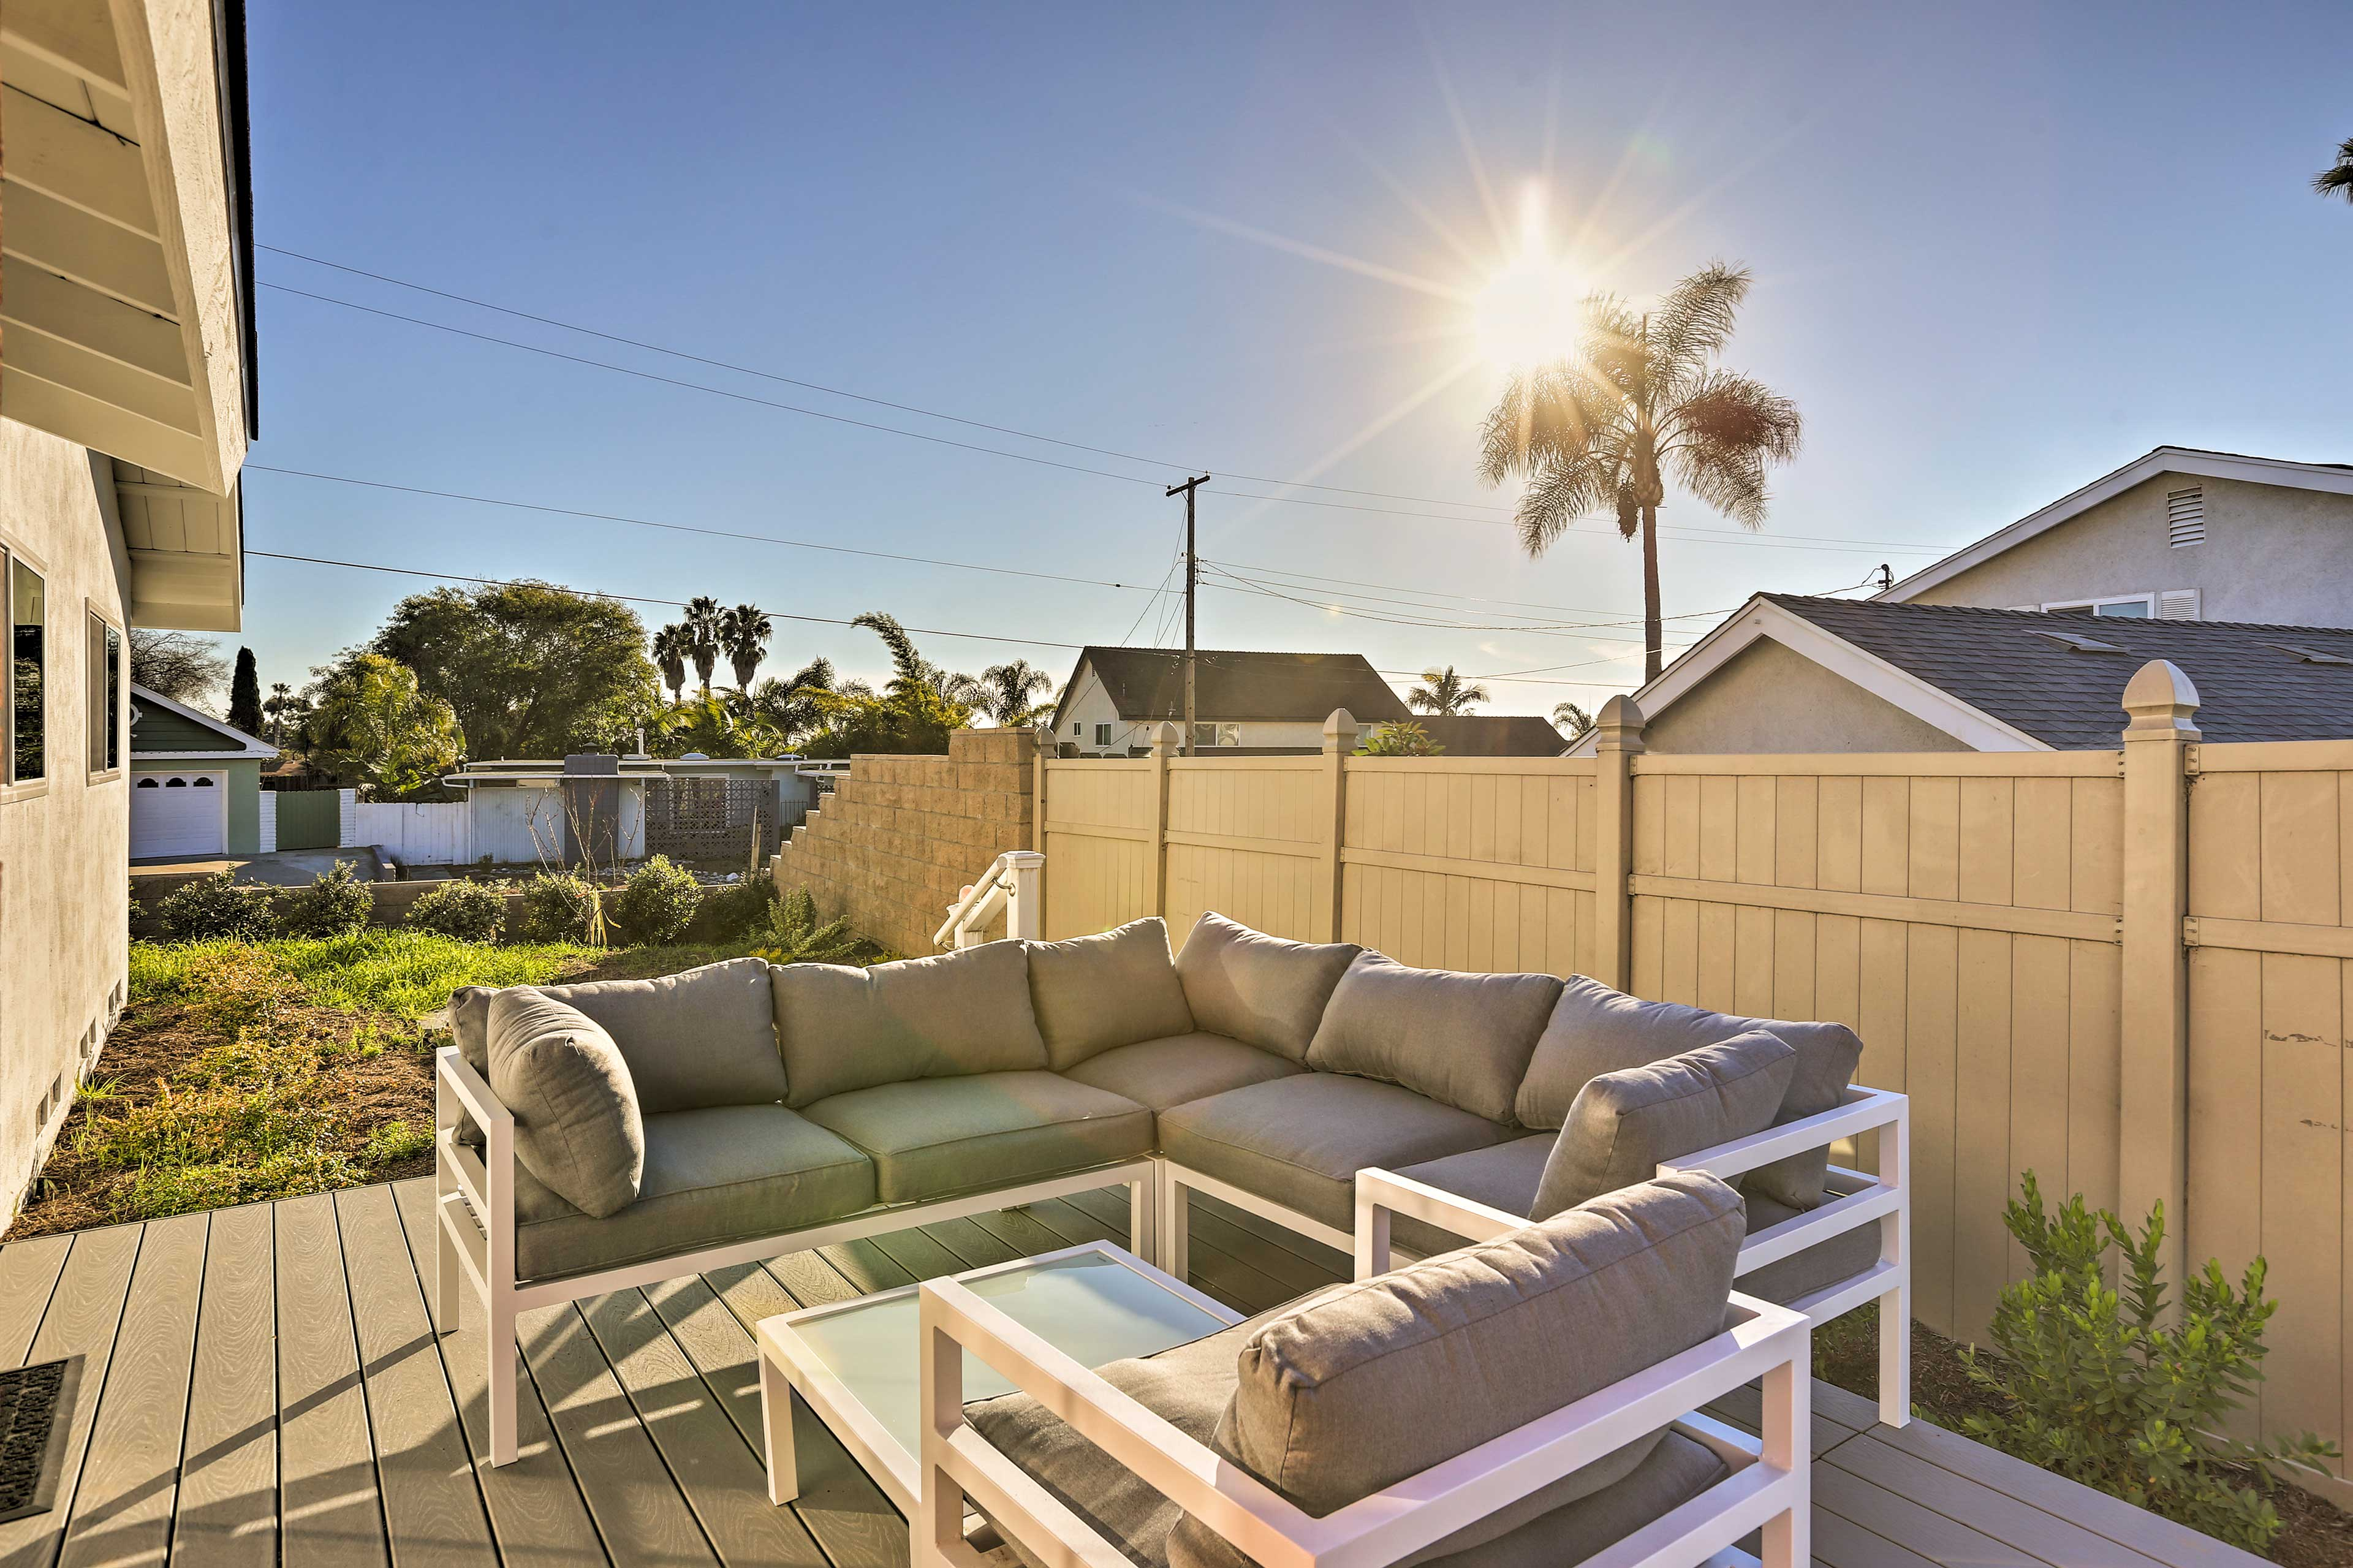 The backyard features a great patio!